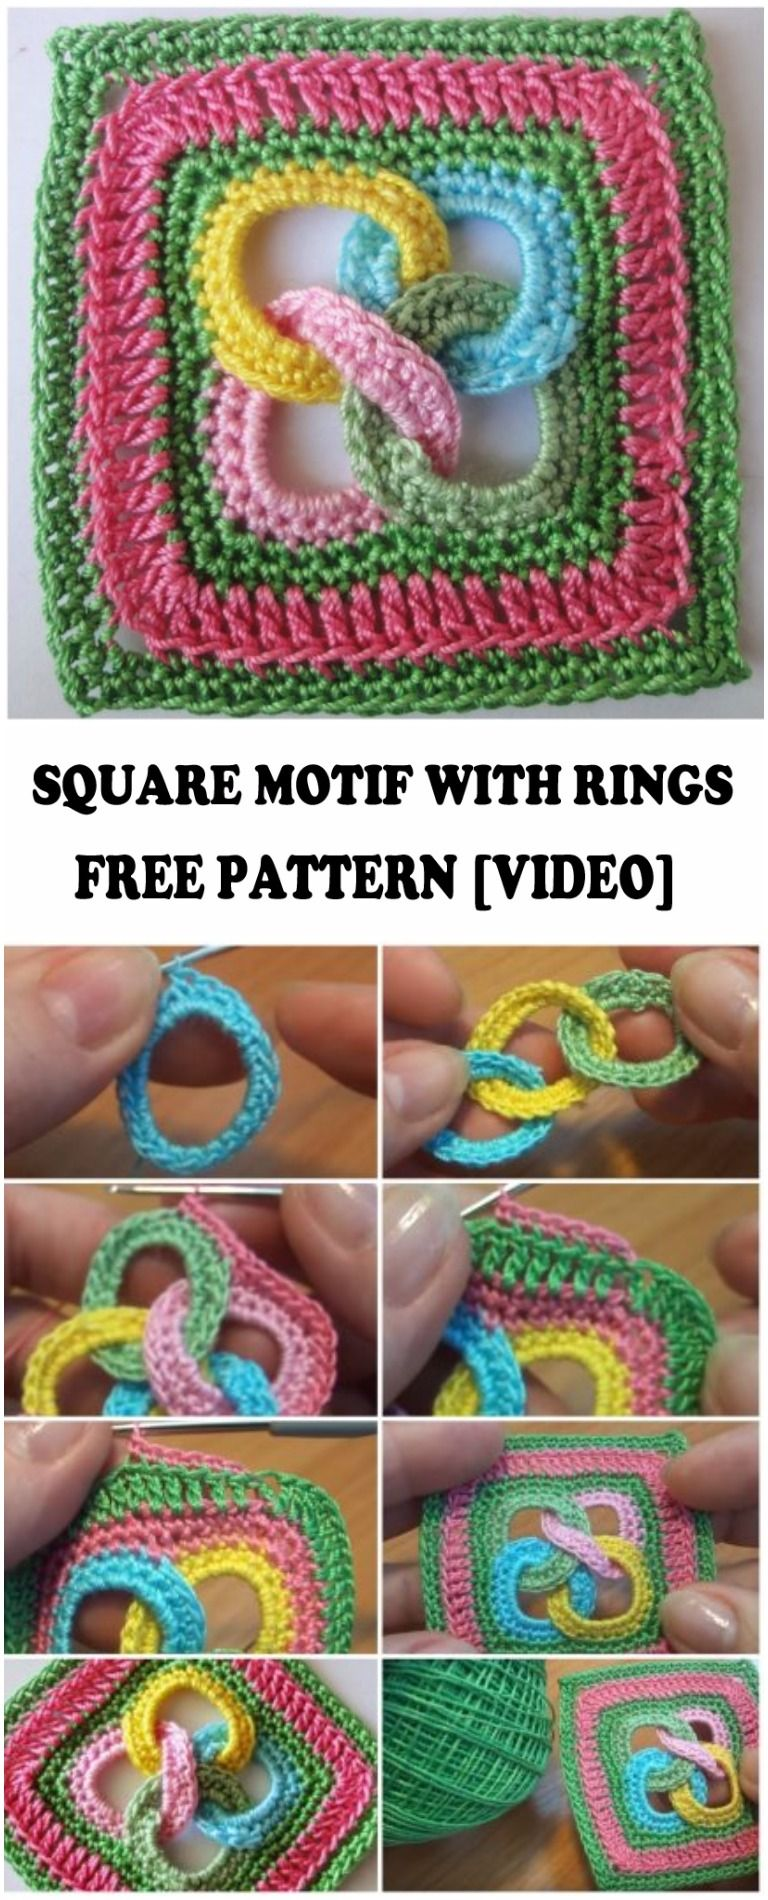 Learn To Crochet Square Motif With Rings Pinterest Haken Hond